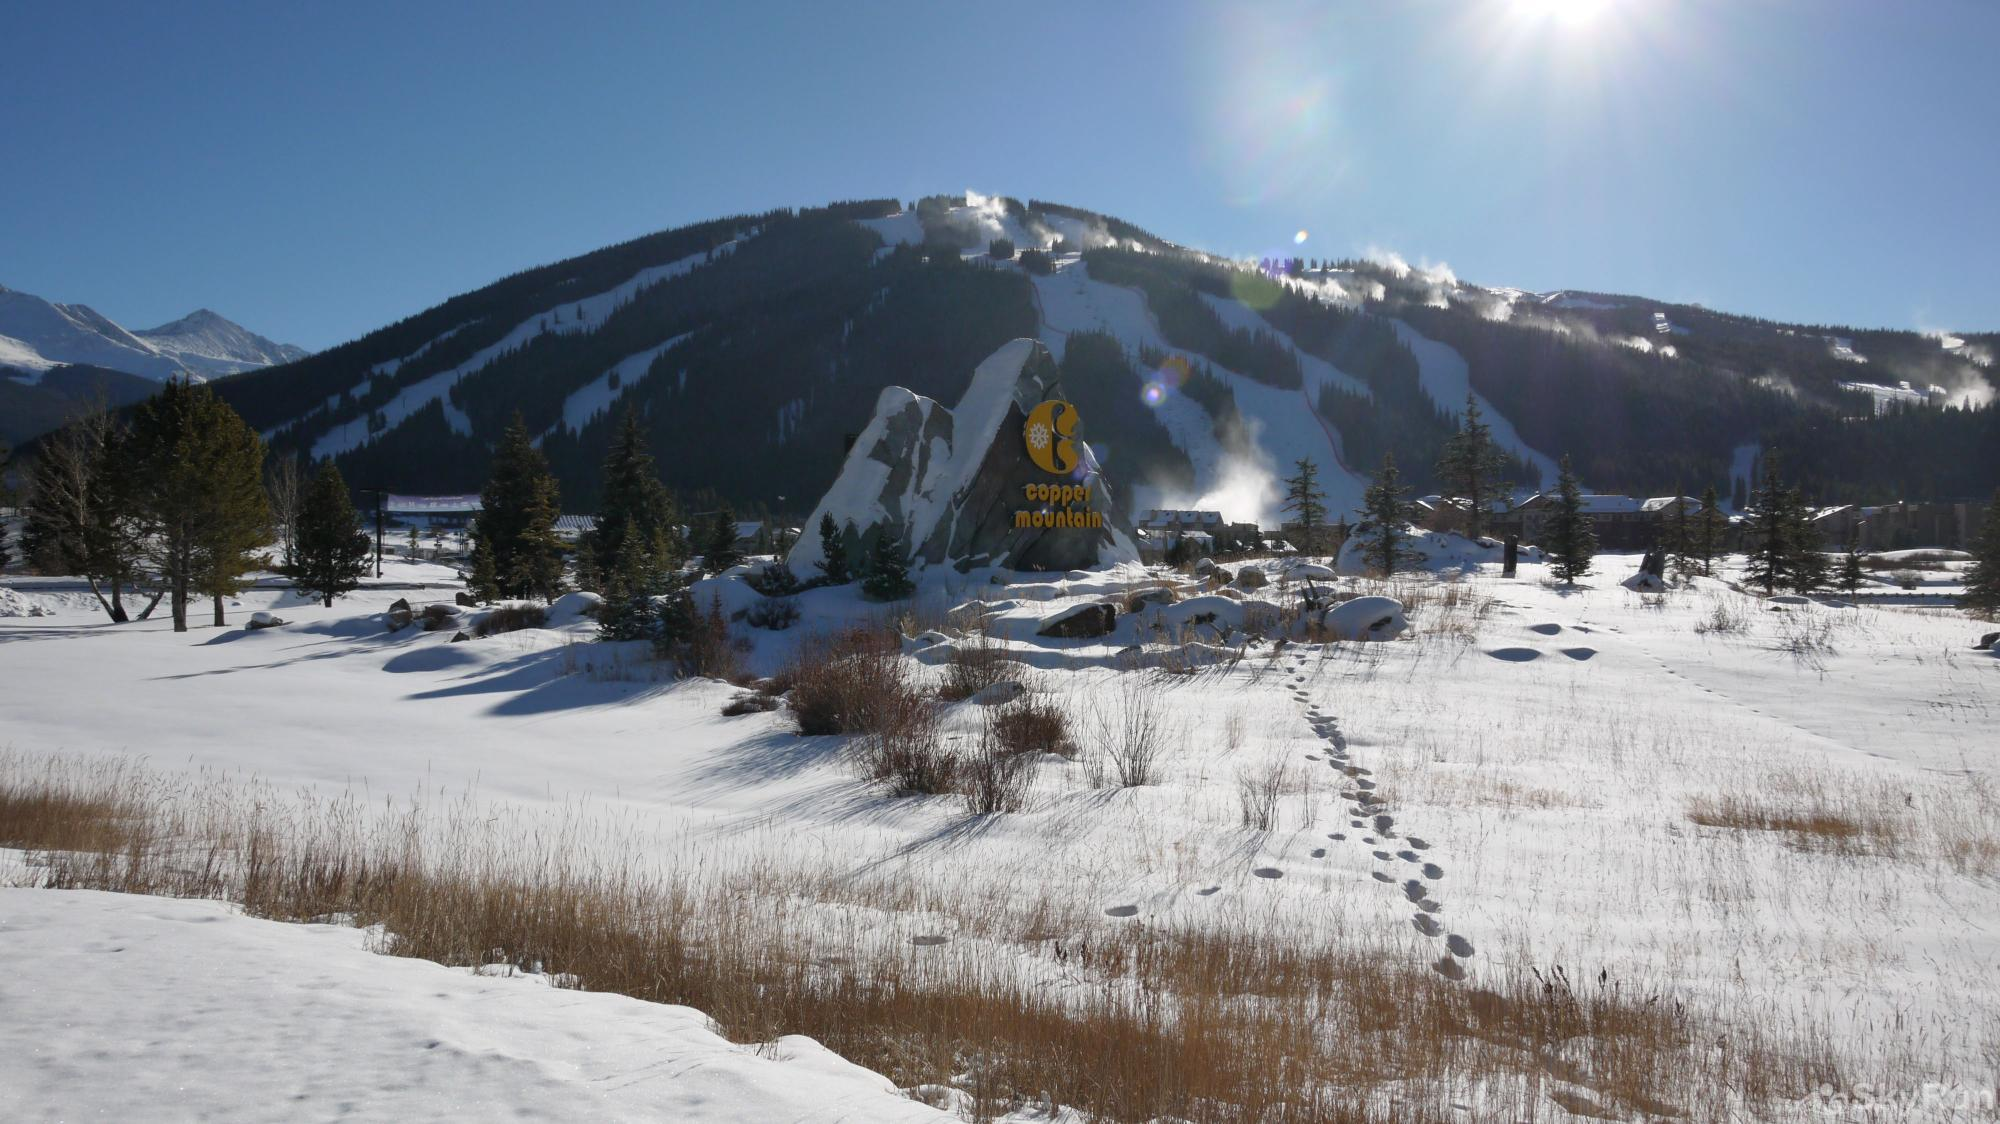 TL505 Telemark Lodge 1BR 2BA The drive up to Copper Mountain